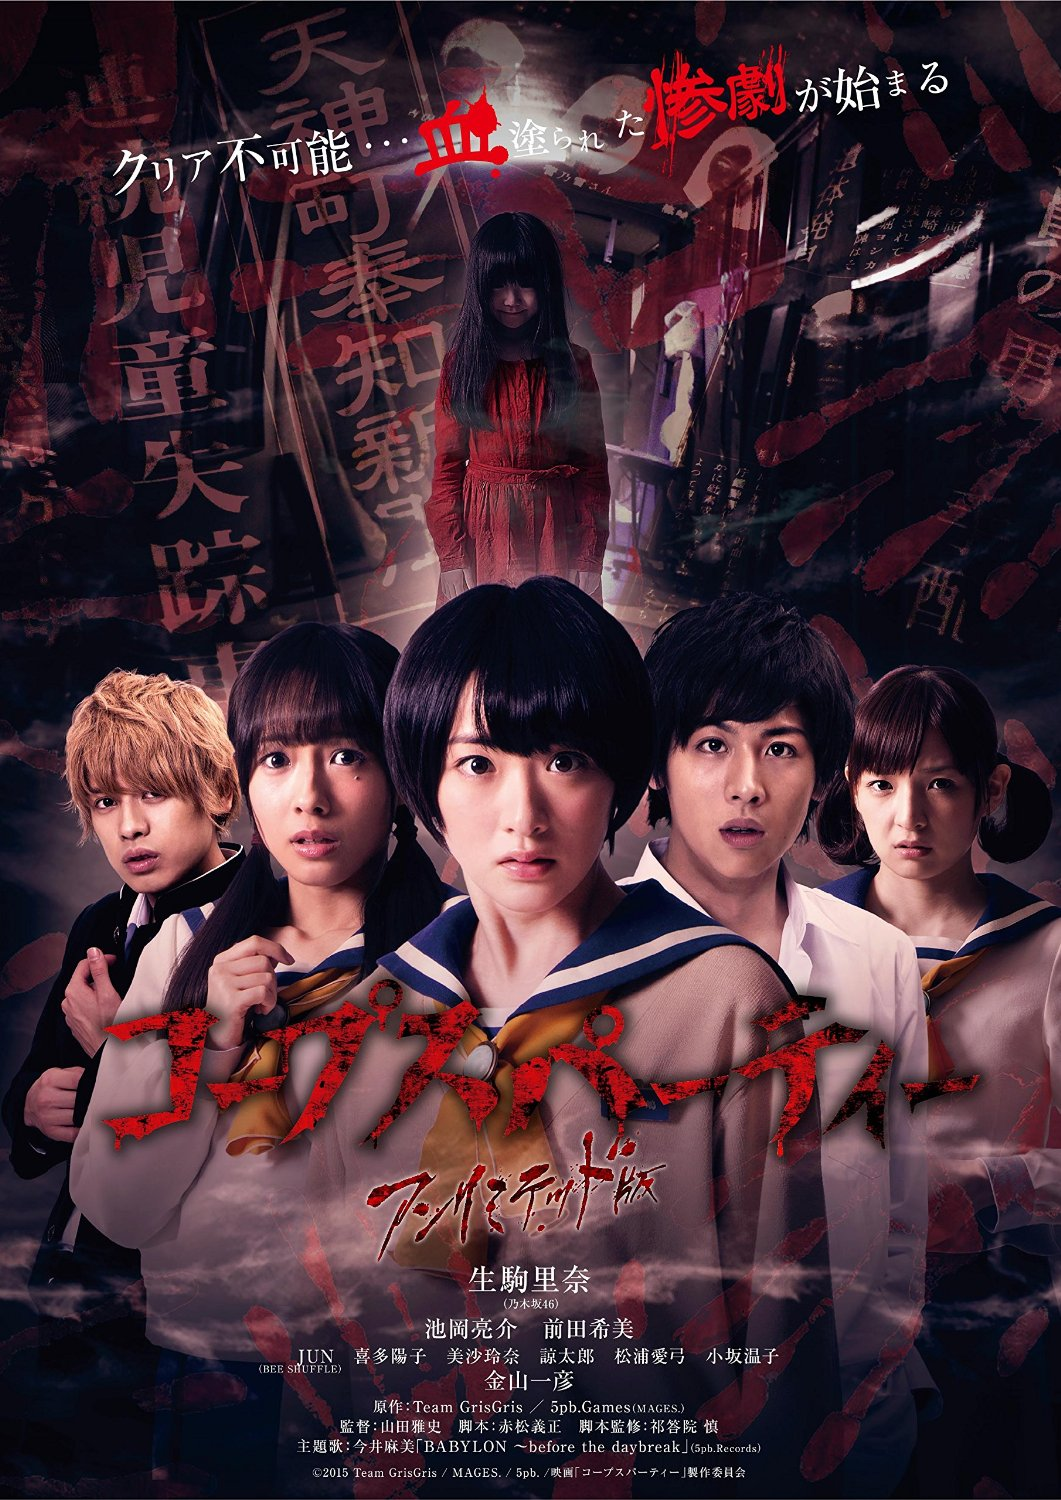 20160228.01.02 Corpse Party (2015) poster.jpg